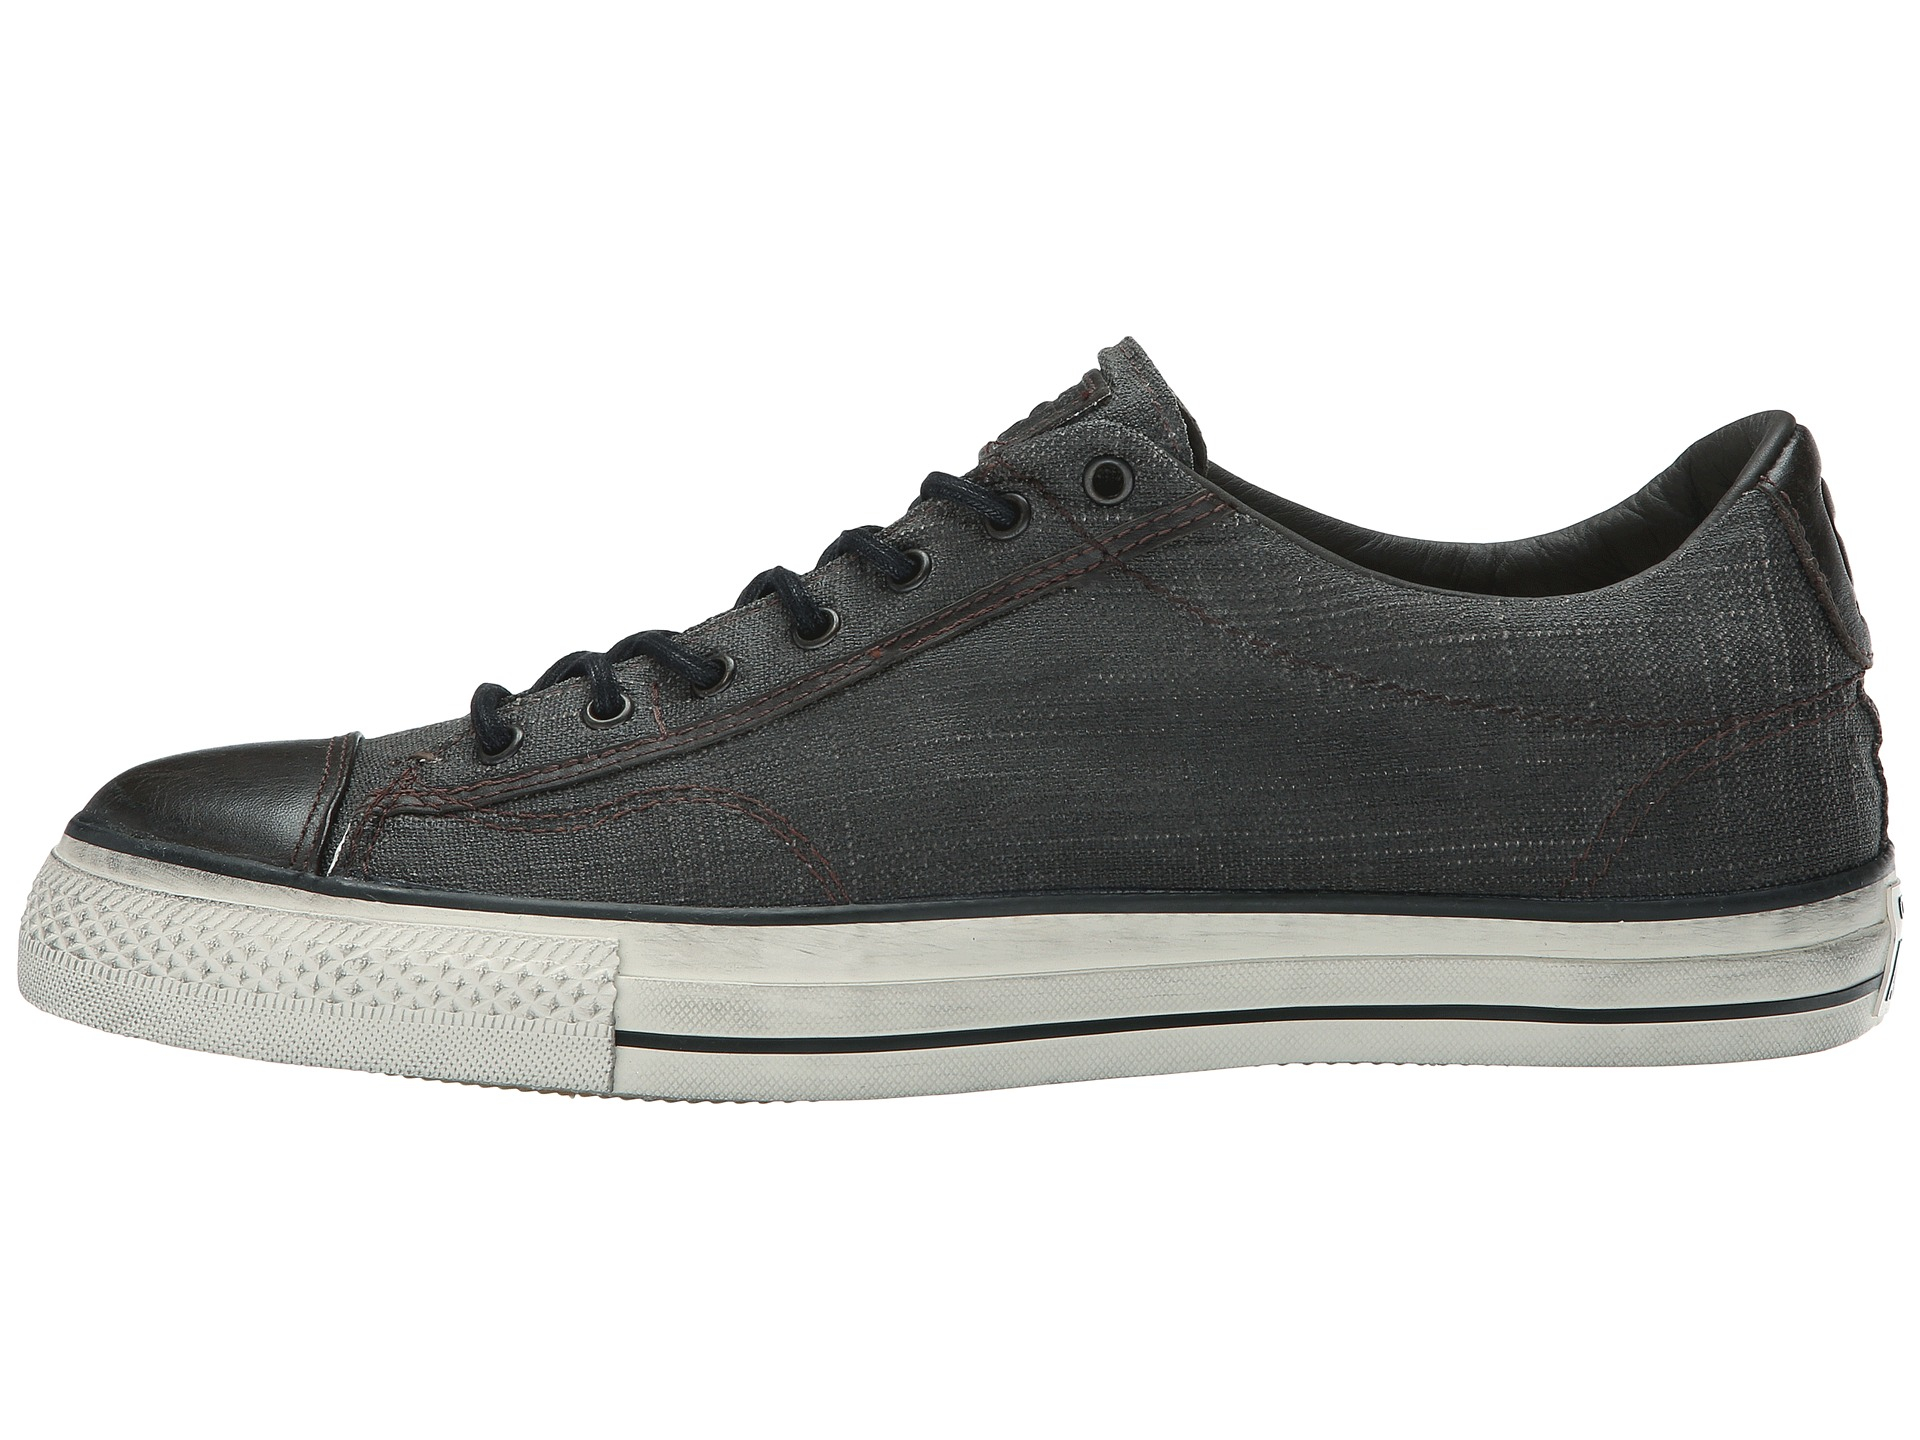 ef87aff65943 Lyst - Converse Chuck Taylor All Star Vintage Ox - Coated Canvas in ...